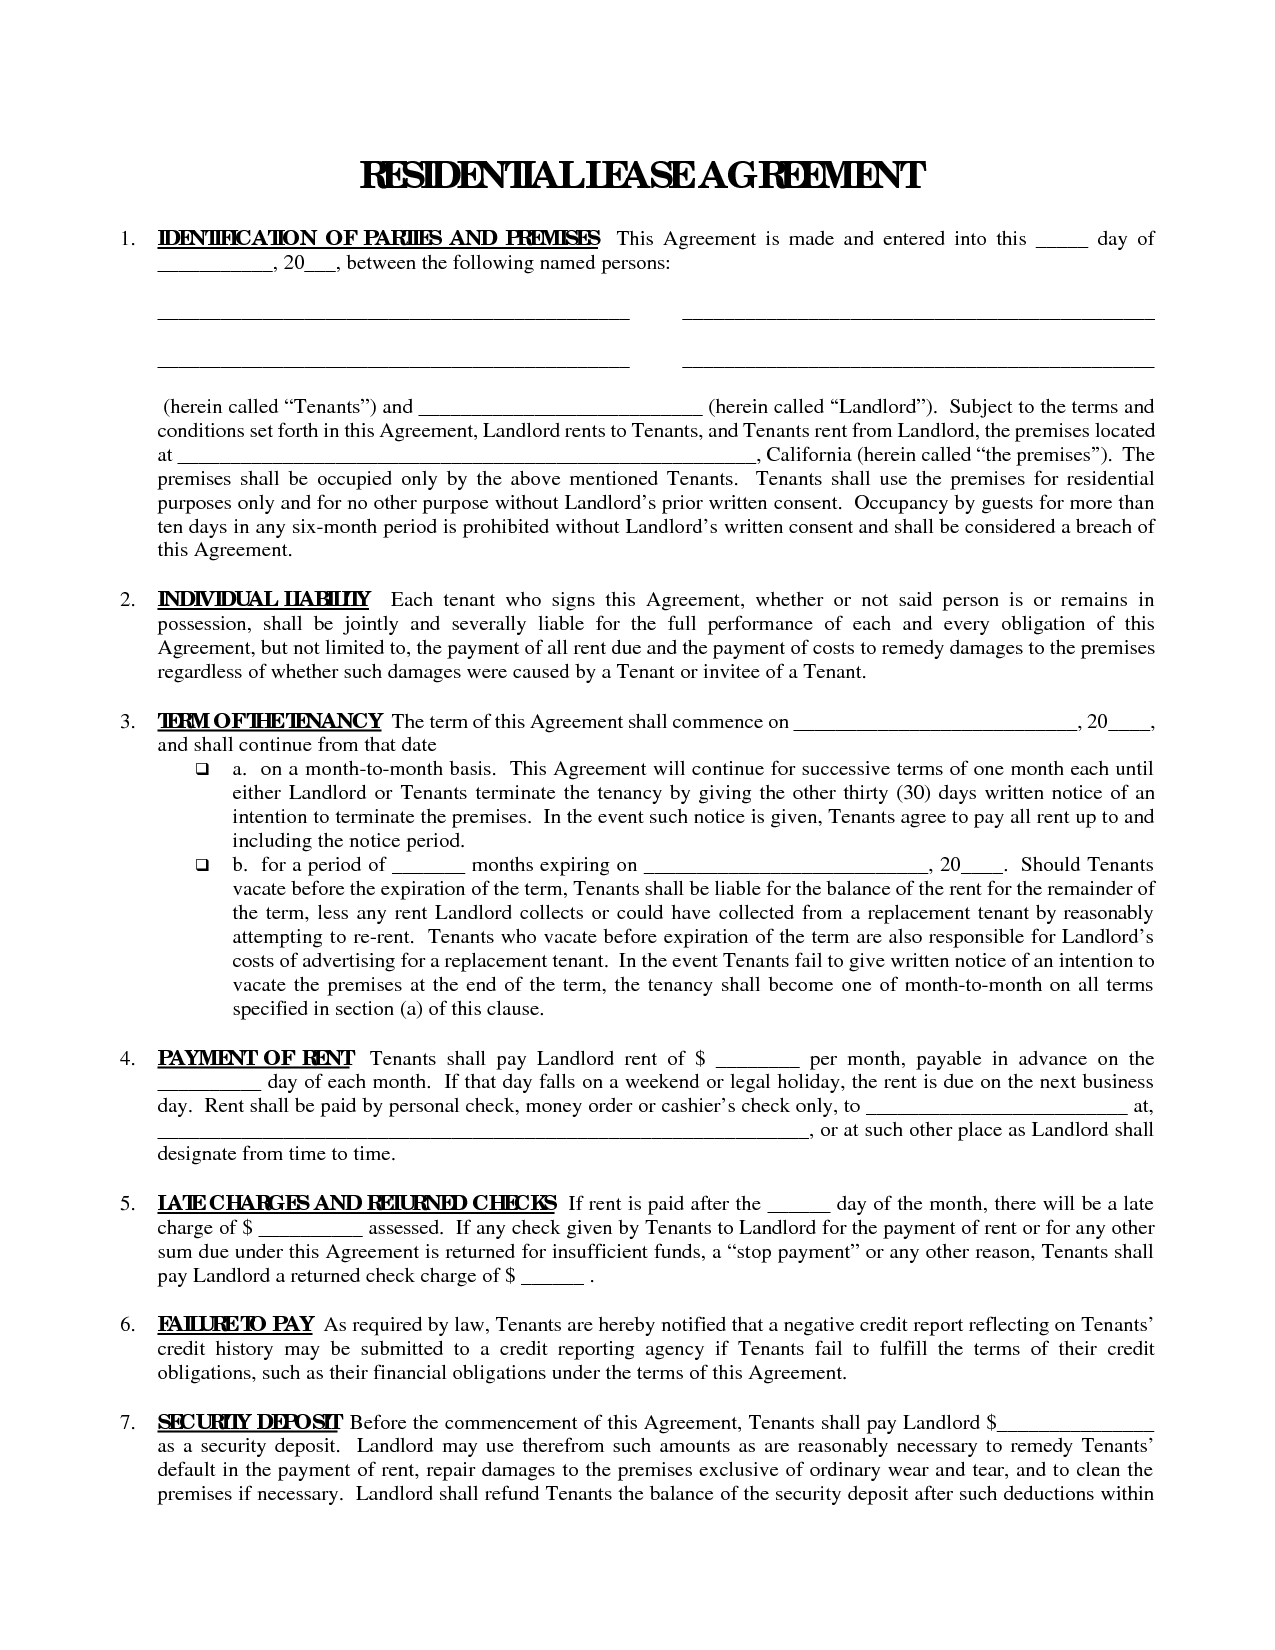 Printable Residential Free House Lease Agreement | Residential Lease  Agreement: Real Estate Legal Form  Printable Rental Agreement Template